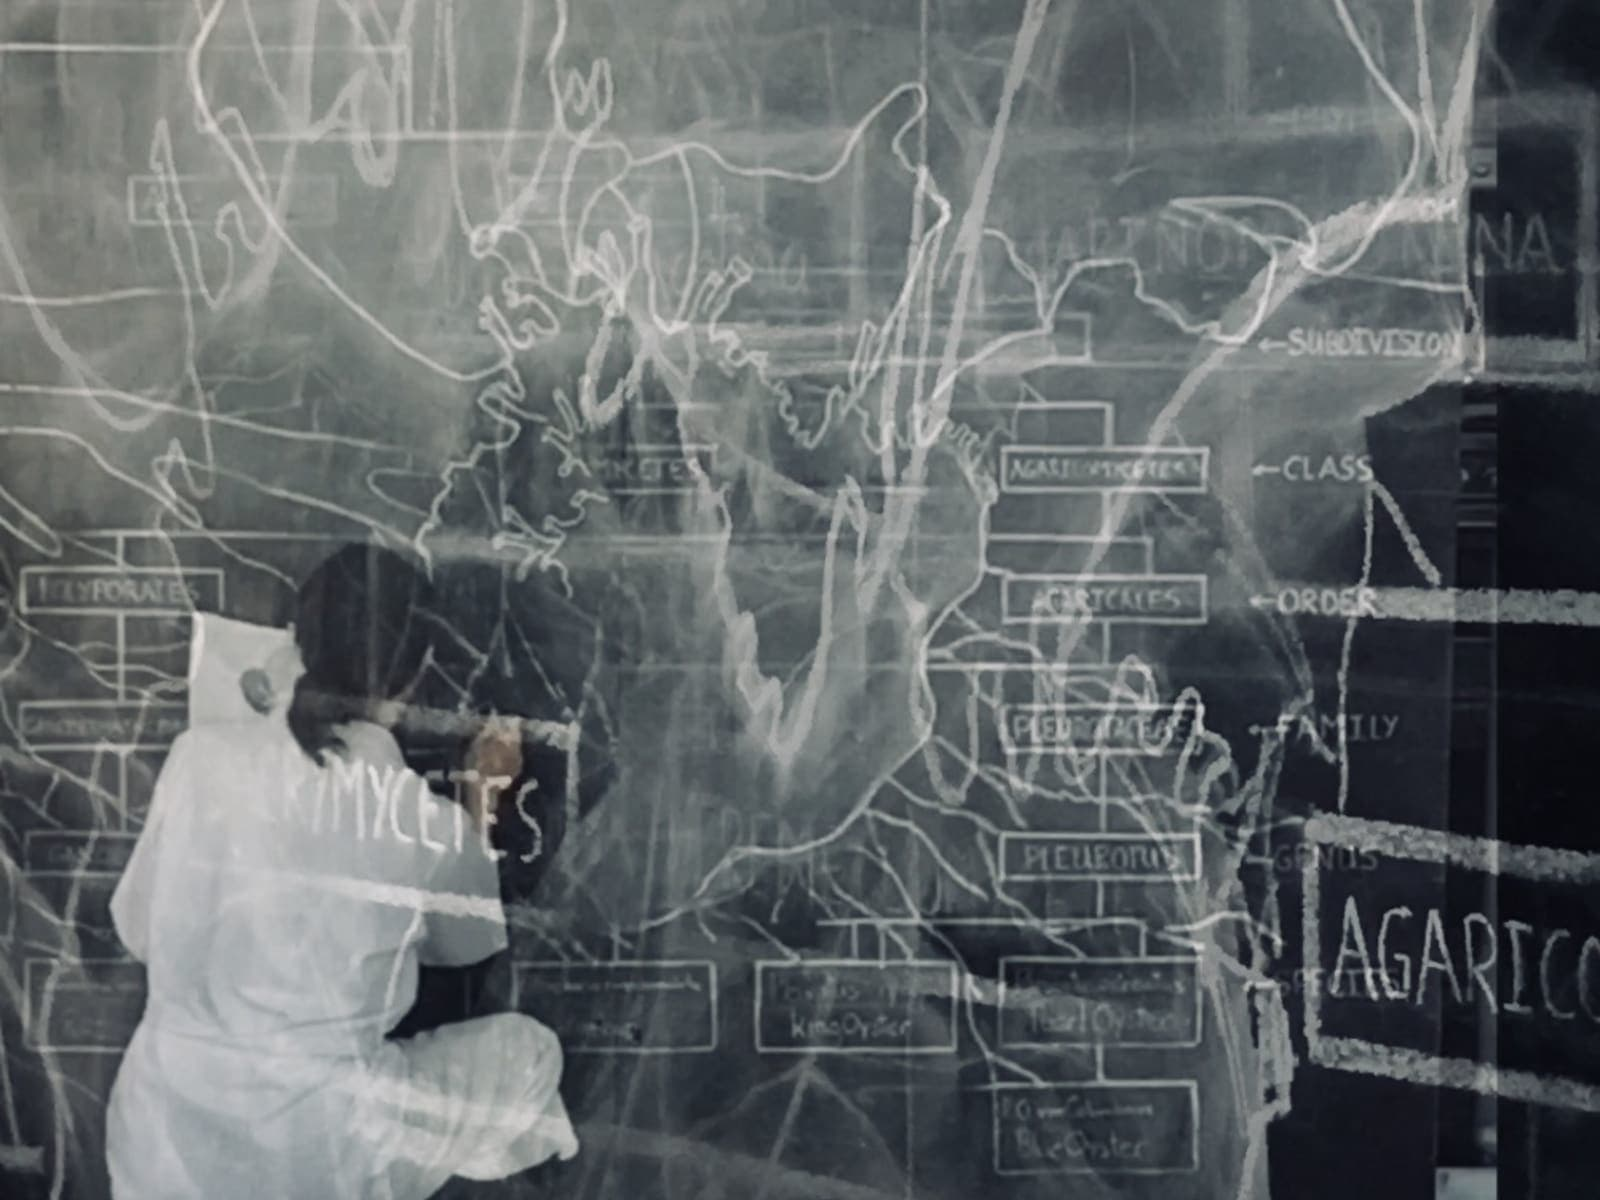 Black and white image of a figure drawing onto a blackboard in chalk